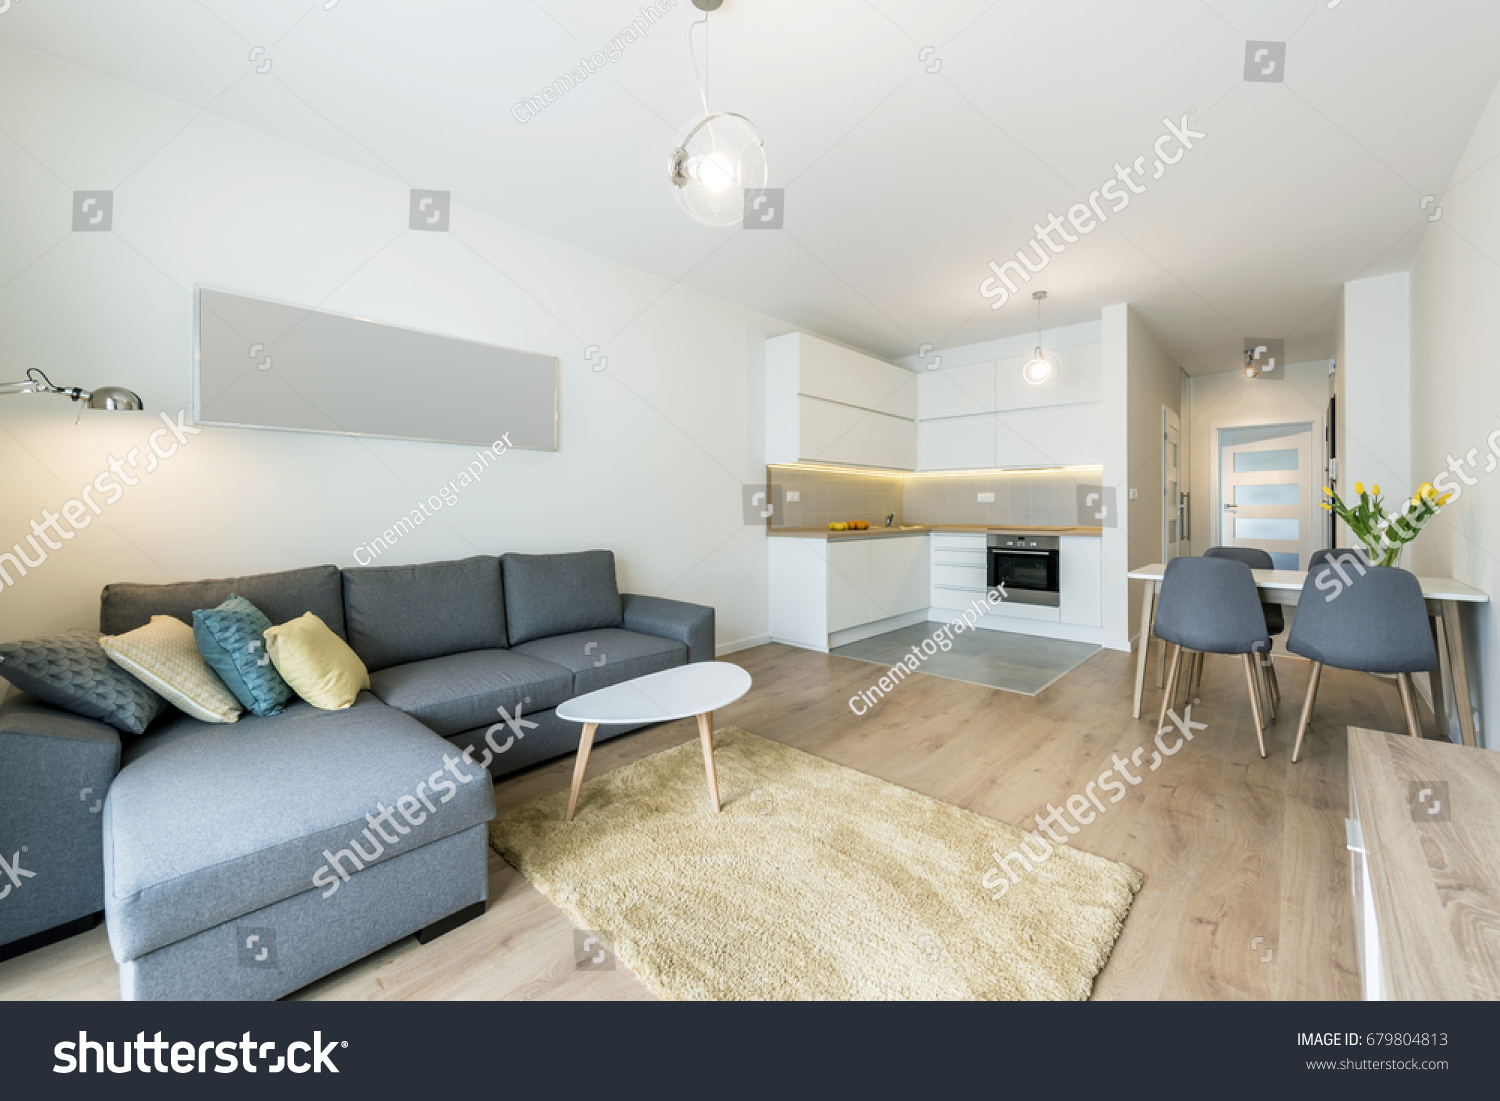 Modern living room and kitchen in small apartment #679804813